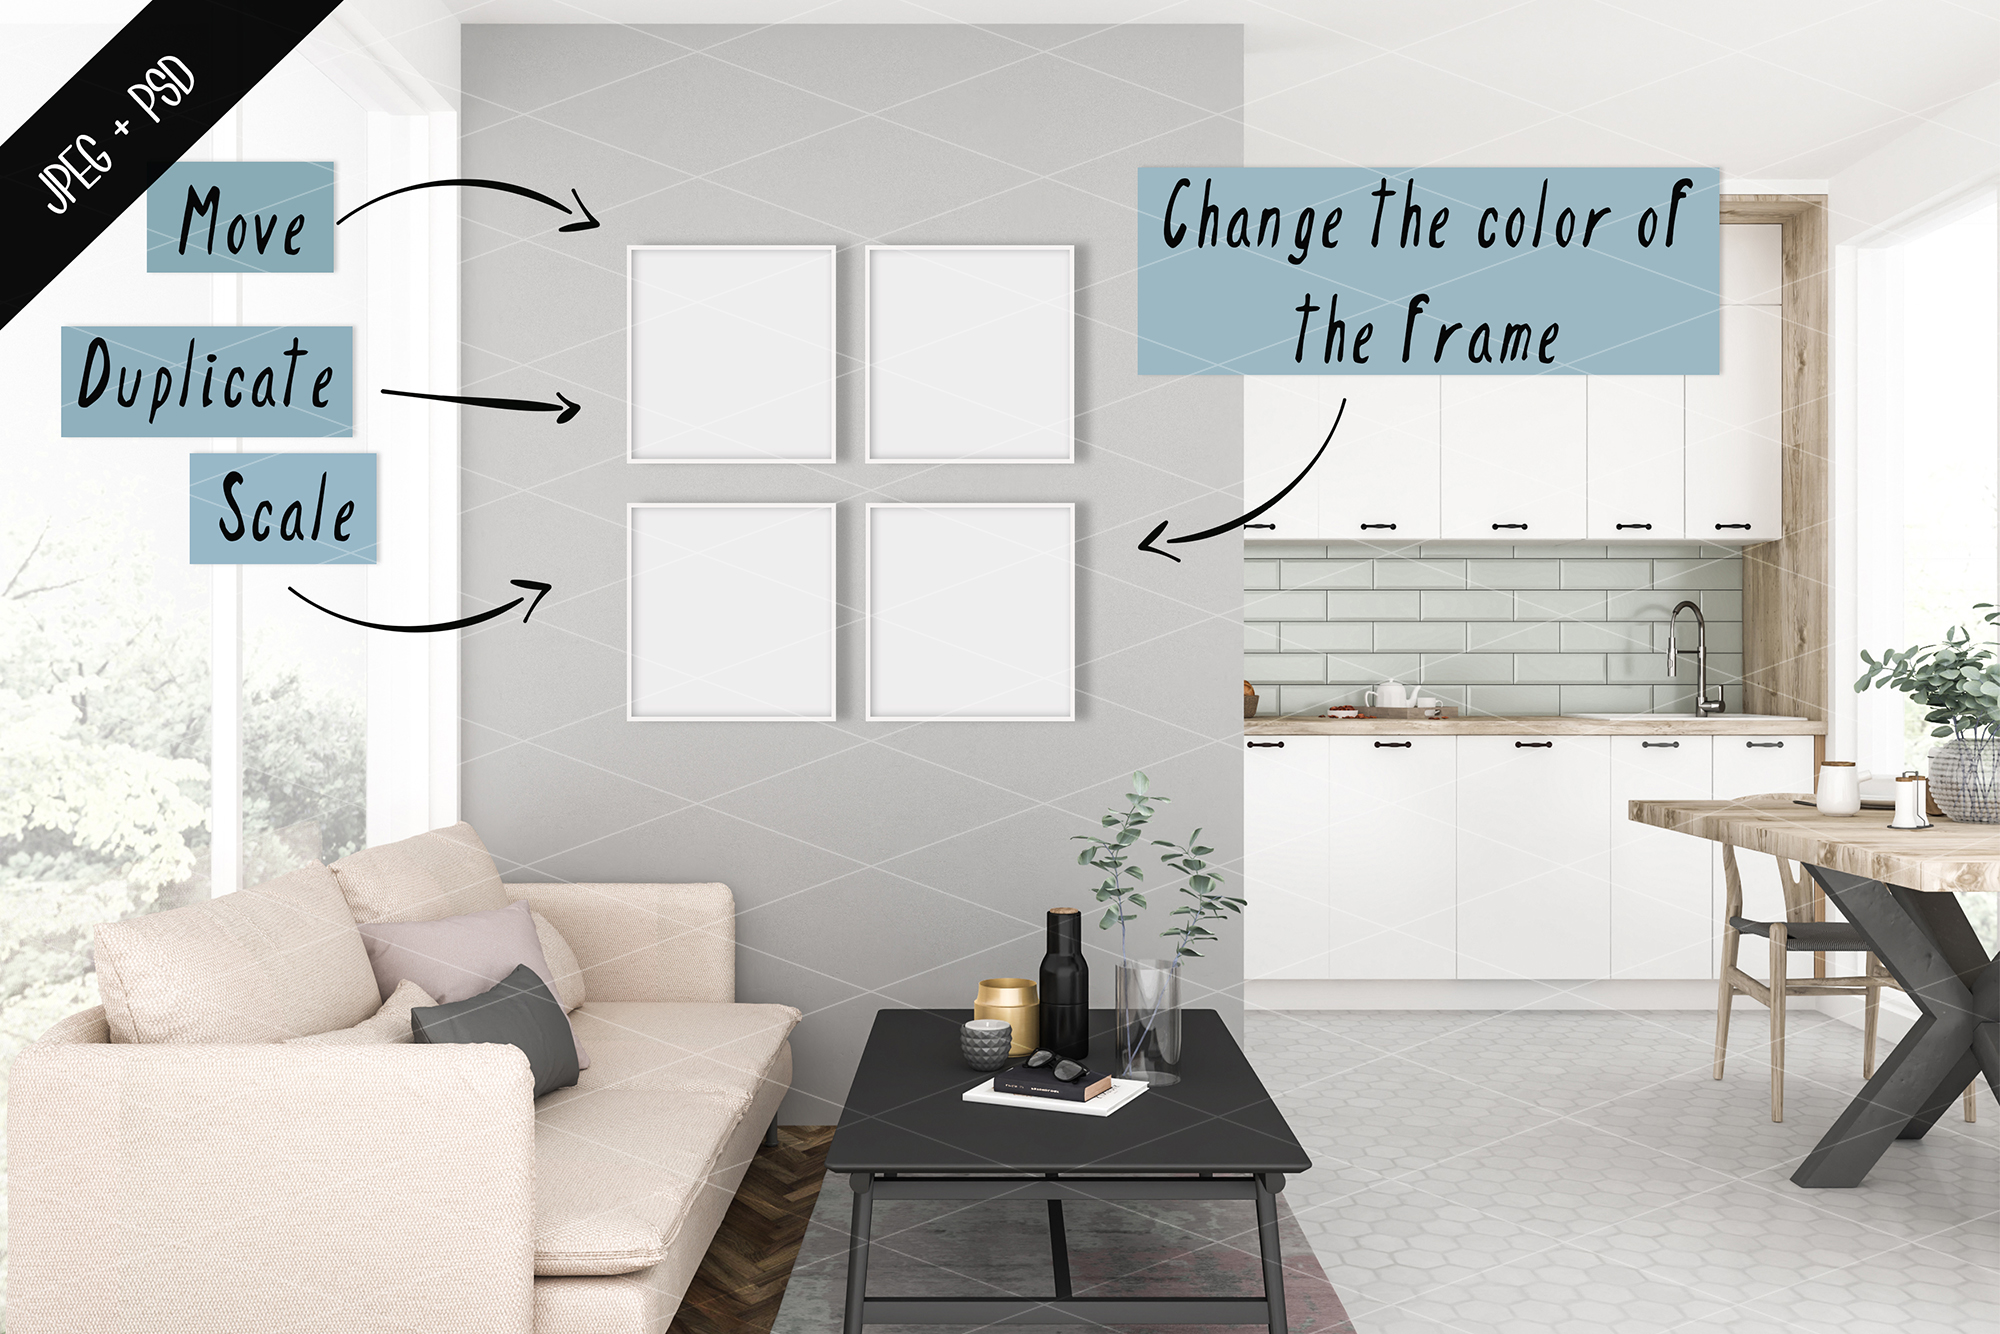 Frame mockup creator - All image size - Interior mockup example image 3